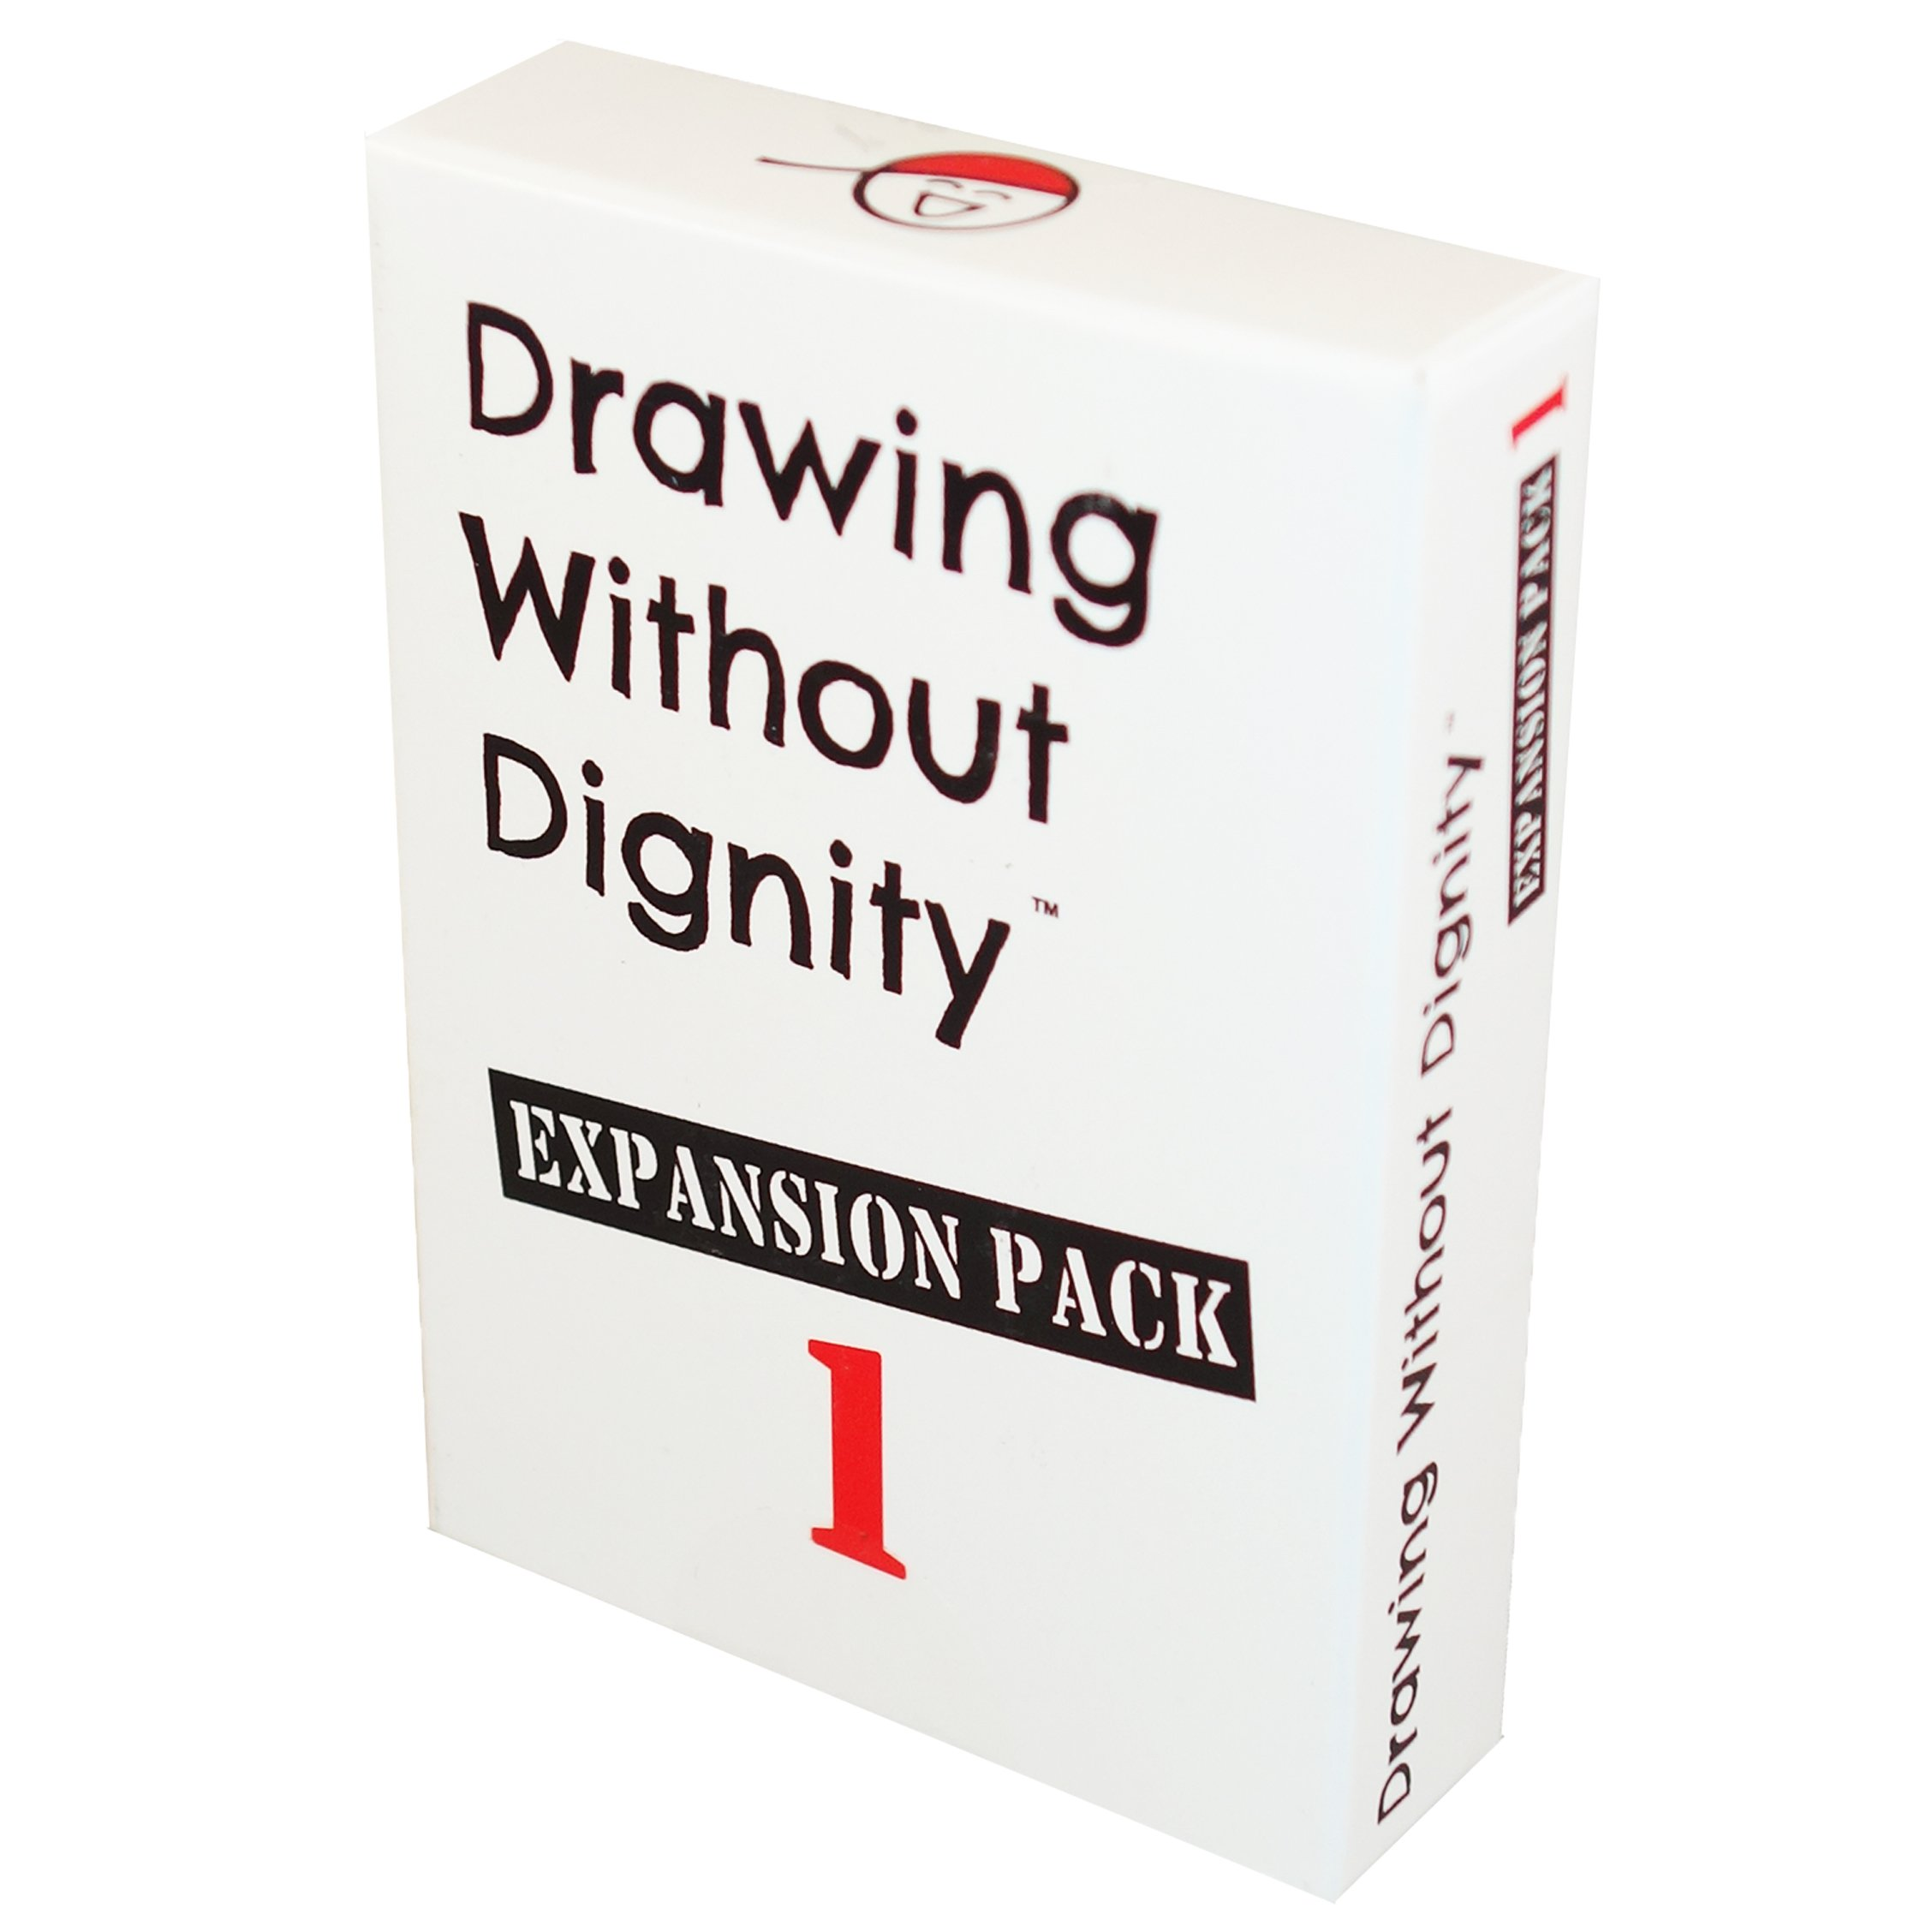 Drawing Without Dignity: Expansion Pack 1 by Drawing Without Dignity